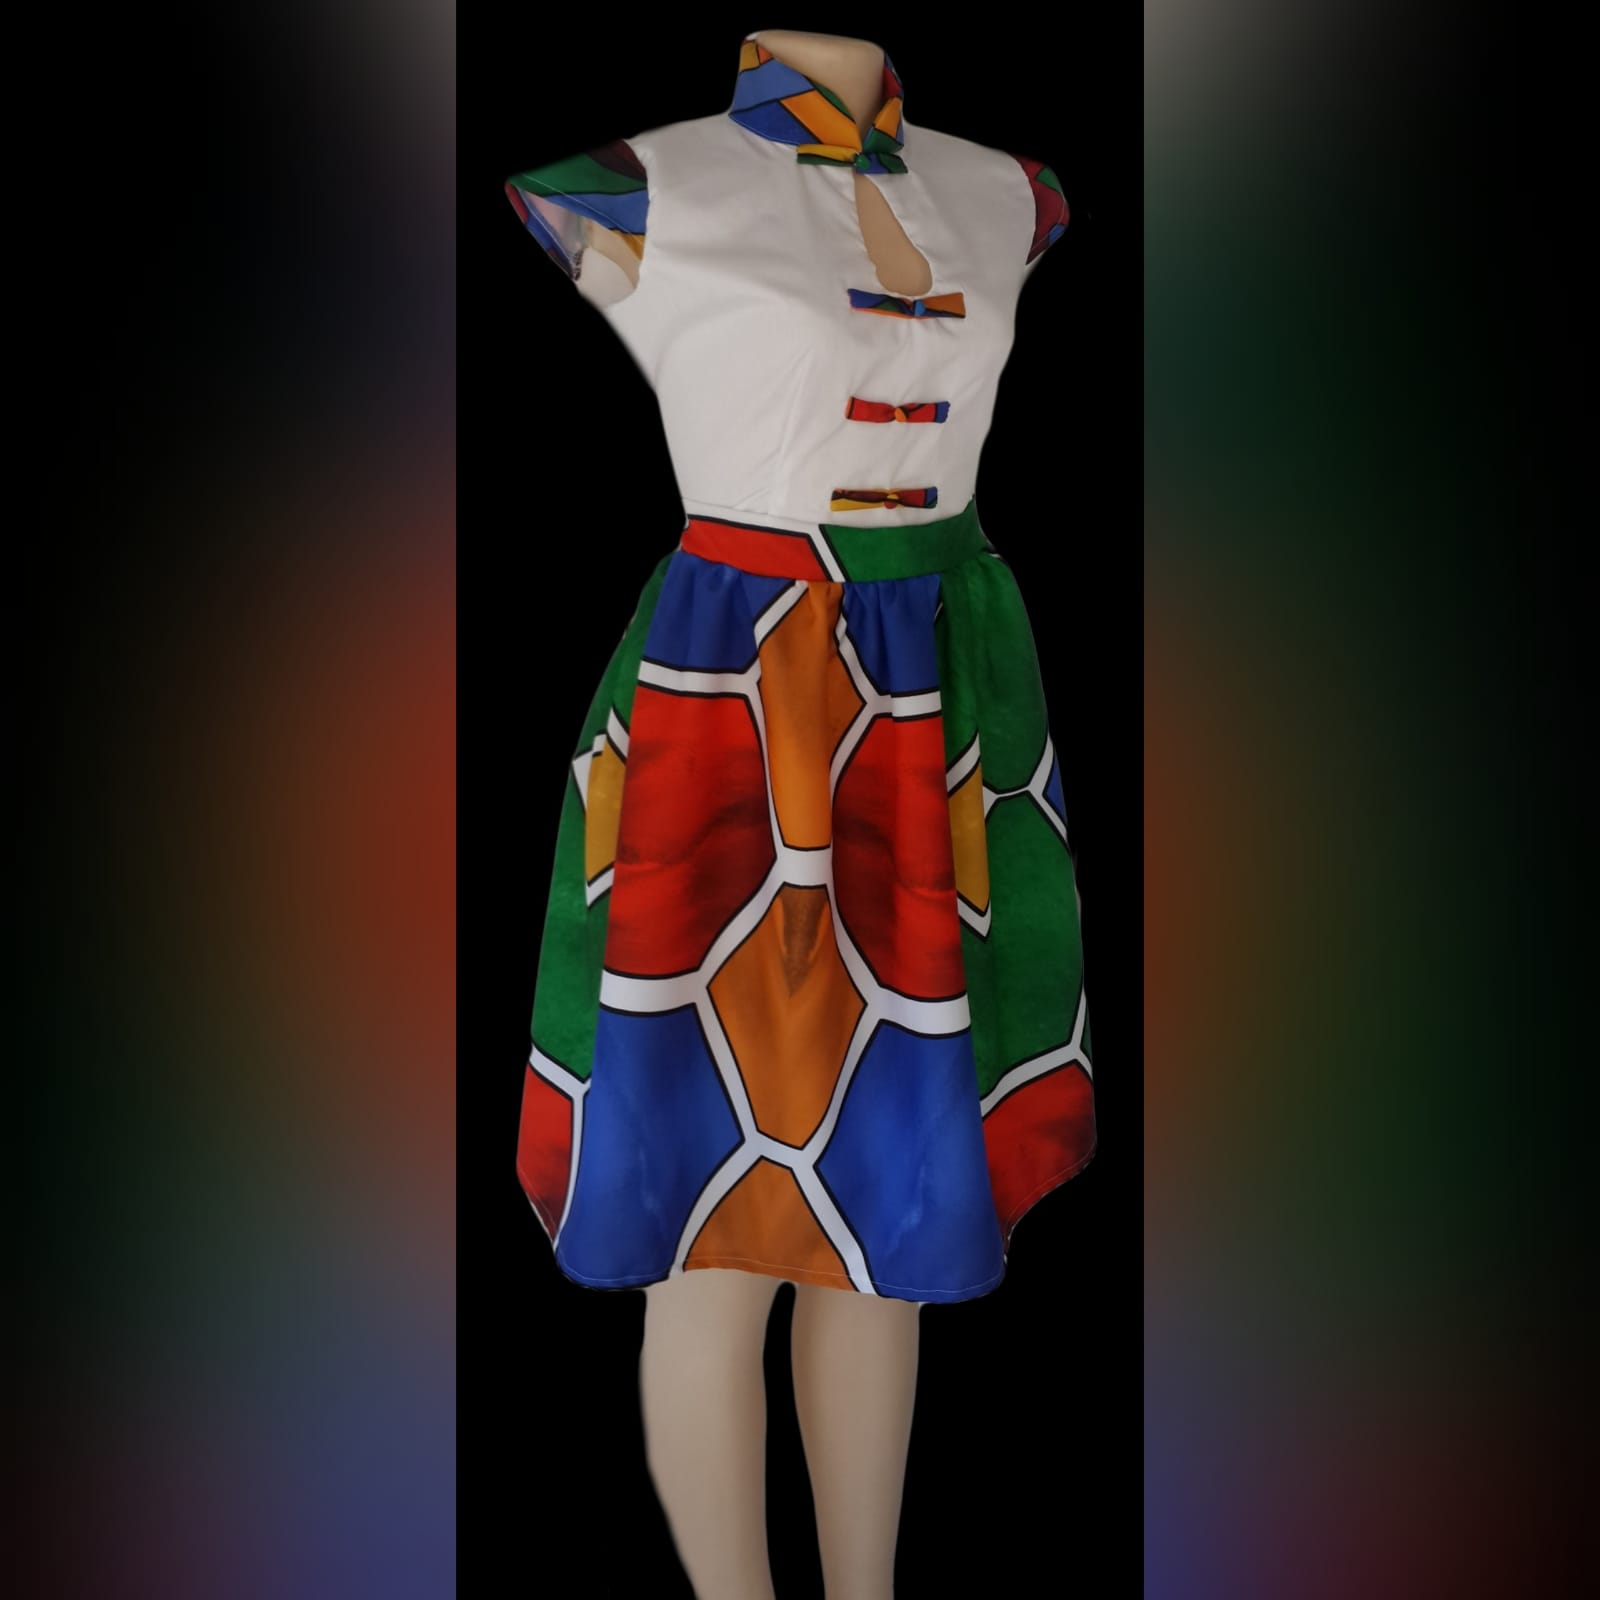 Ndebele dress with white bodice and ndebele print detail 1 traditional ndebele dress, white bodice, chinese collar, cap sleeves and button detail in ndebele print. Bottom of dress in full ndebele print.